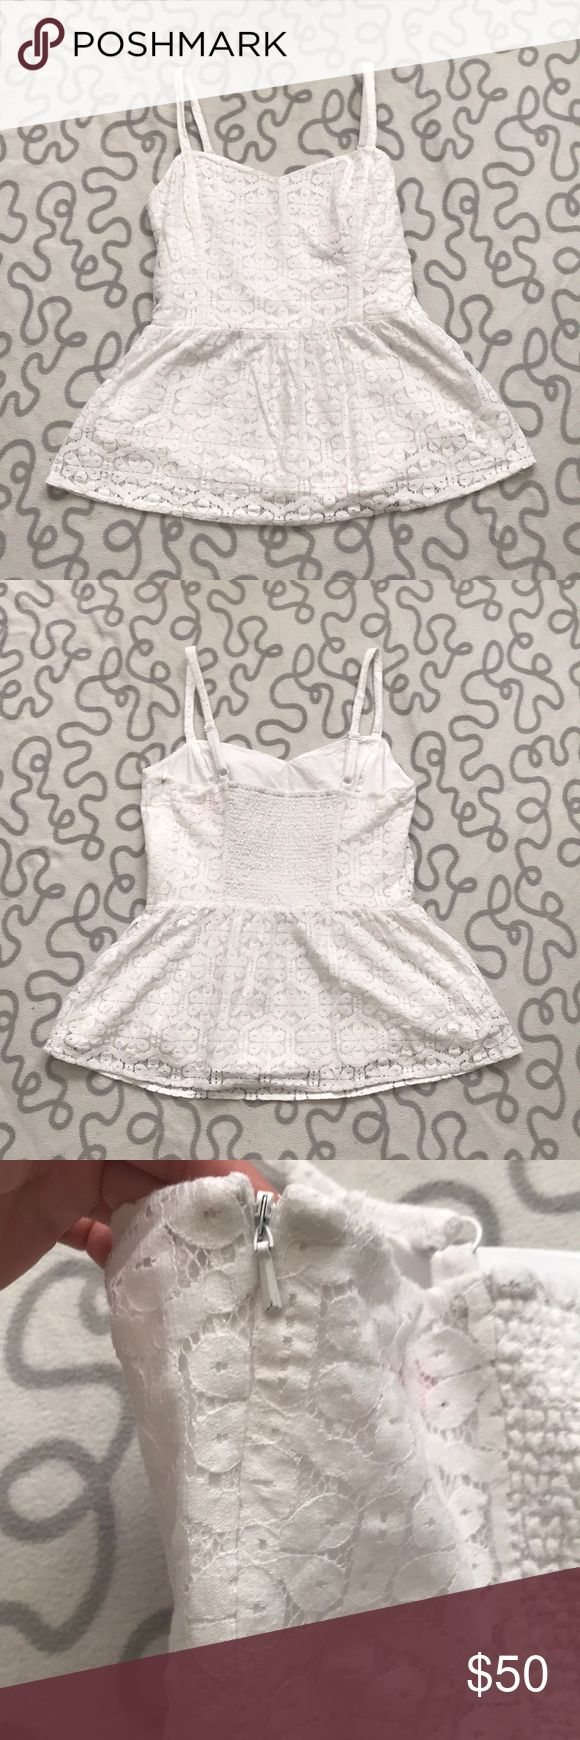 Lilly Pulitzer Lace Tank Top Perfect condition. It has a sweetheart neckline and is lined underneath. Straps are adjustable. Zips down the side and the back has some elastic for some stretch. Lilly Pulitzer Tops Tank Tops